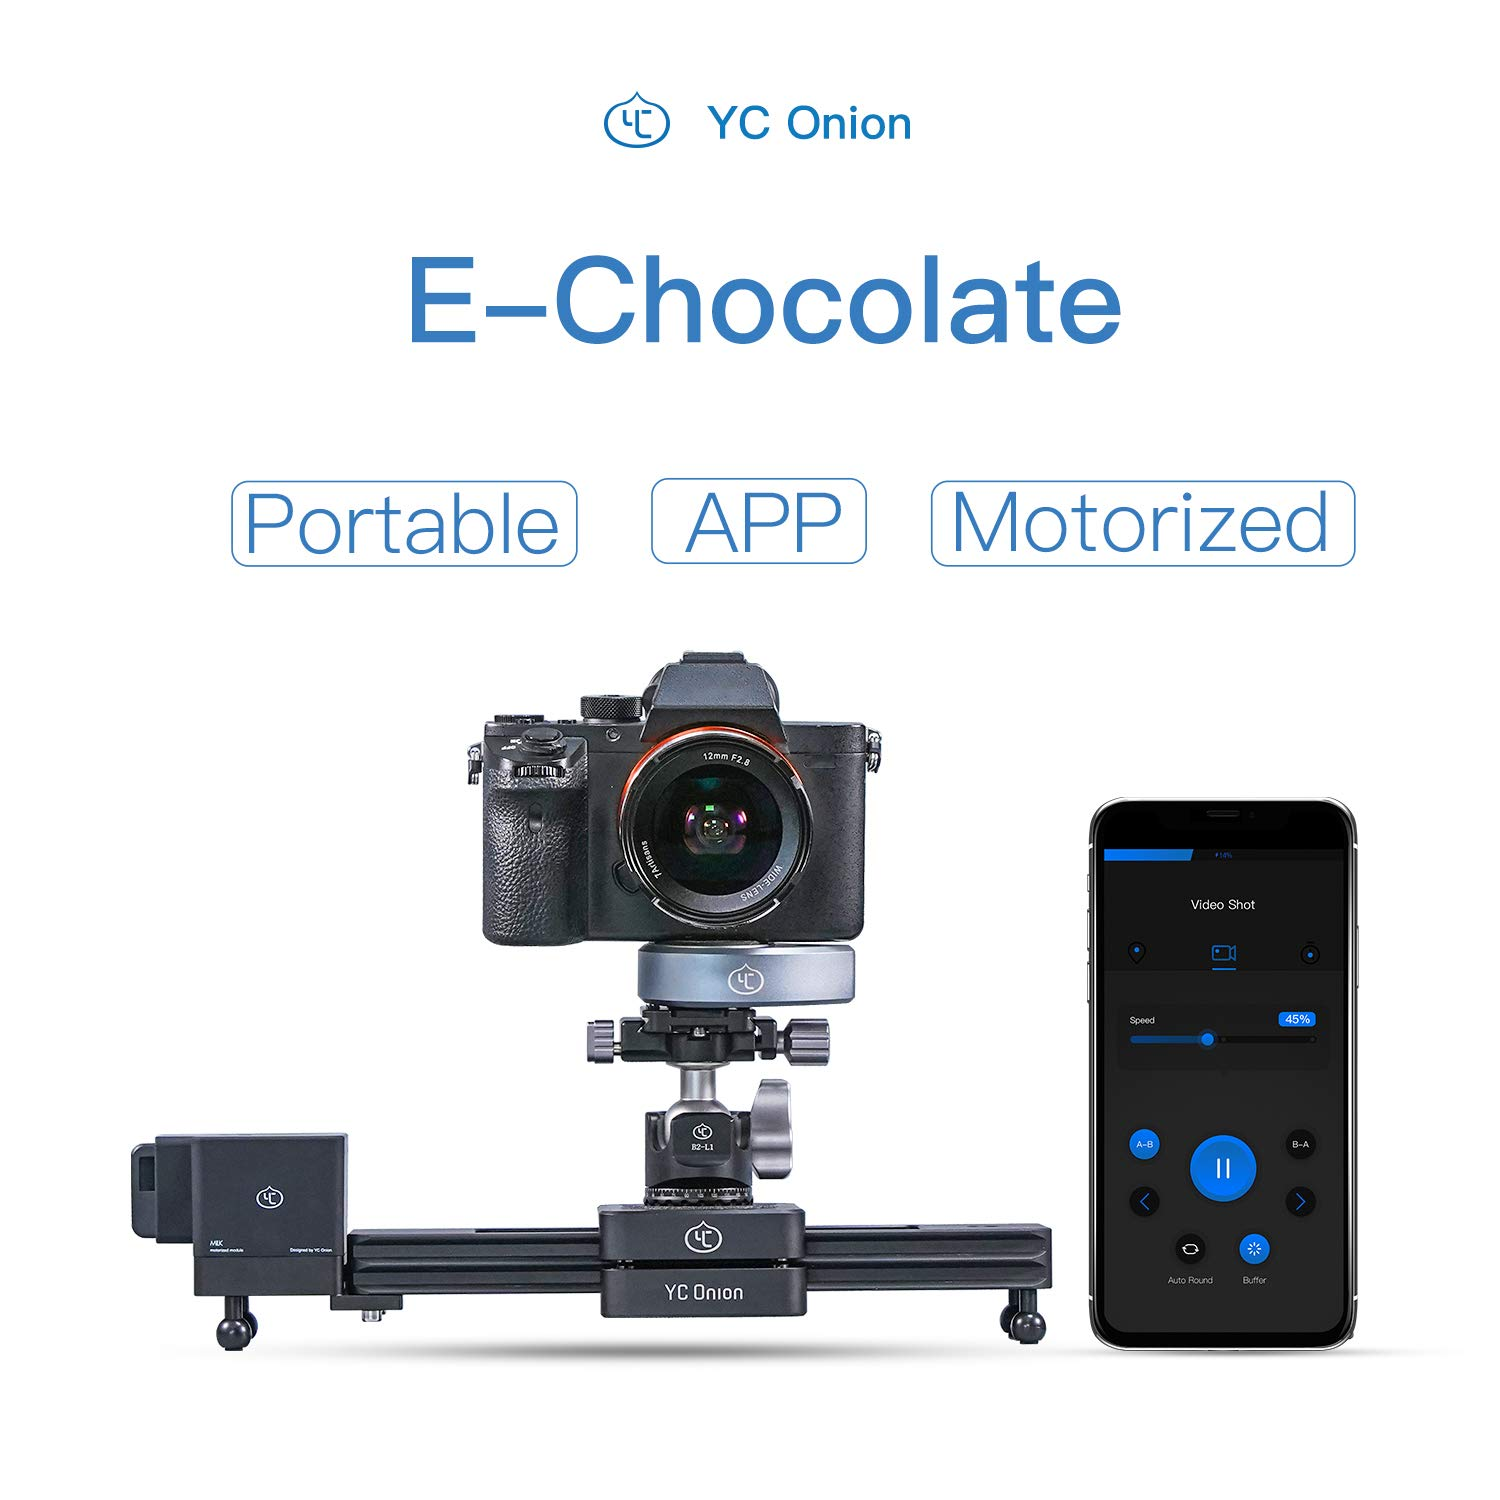 Camera Slider Motorized APP Control Aluminum Alloy Retractable Portable for DSLR Camera Camcorder Smart Phone GoPro 12''/30cm - YC Onion by AKUGE